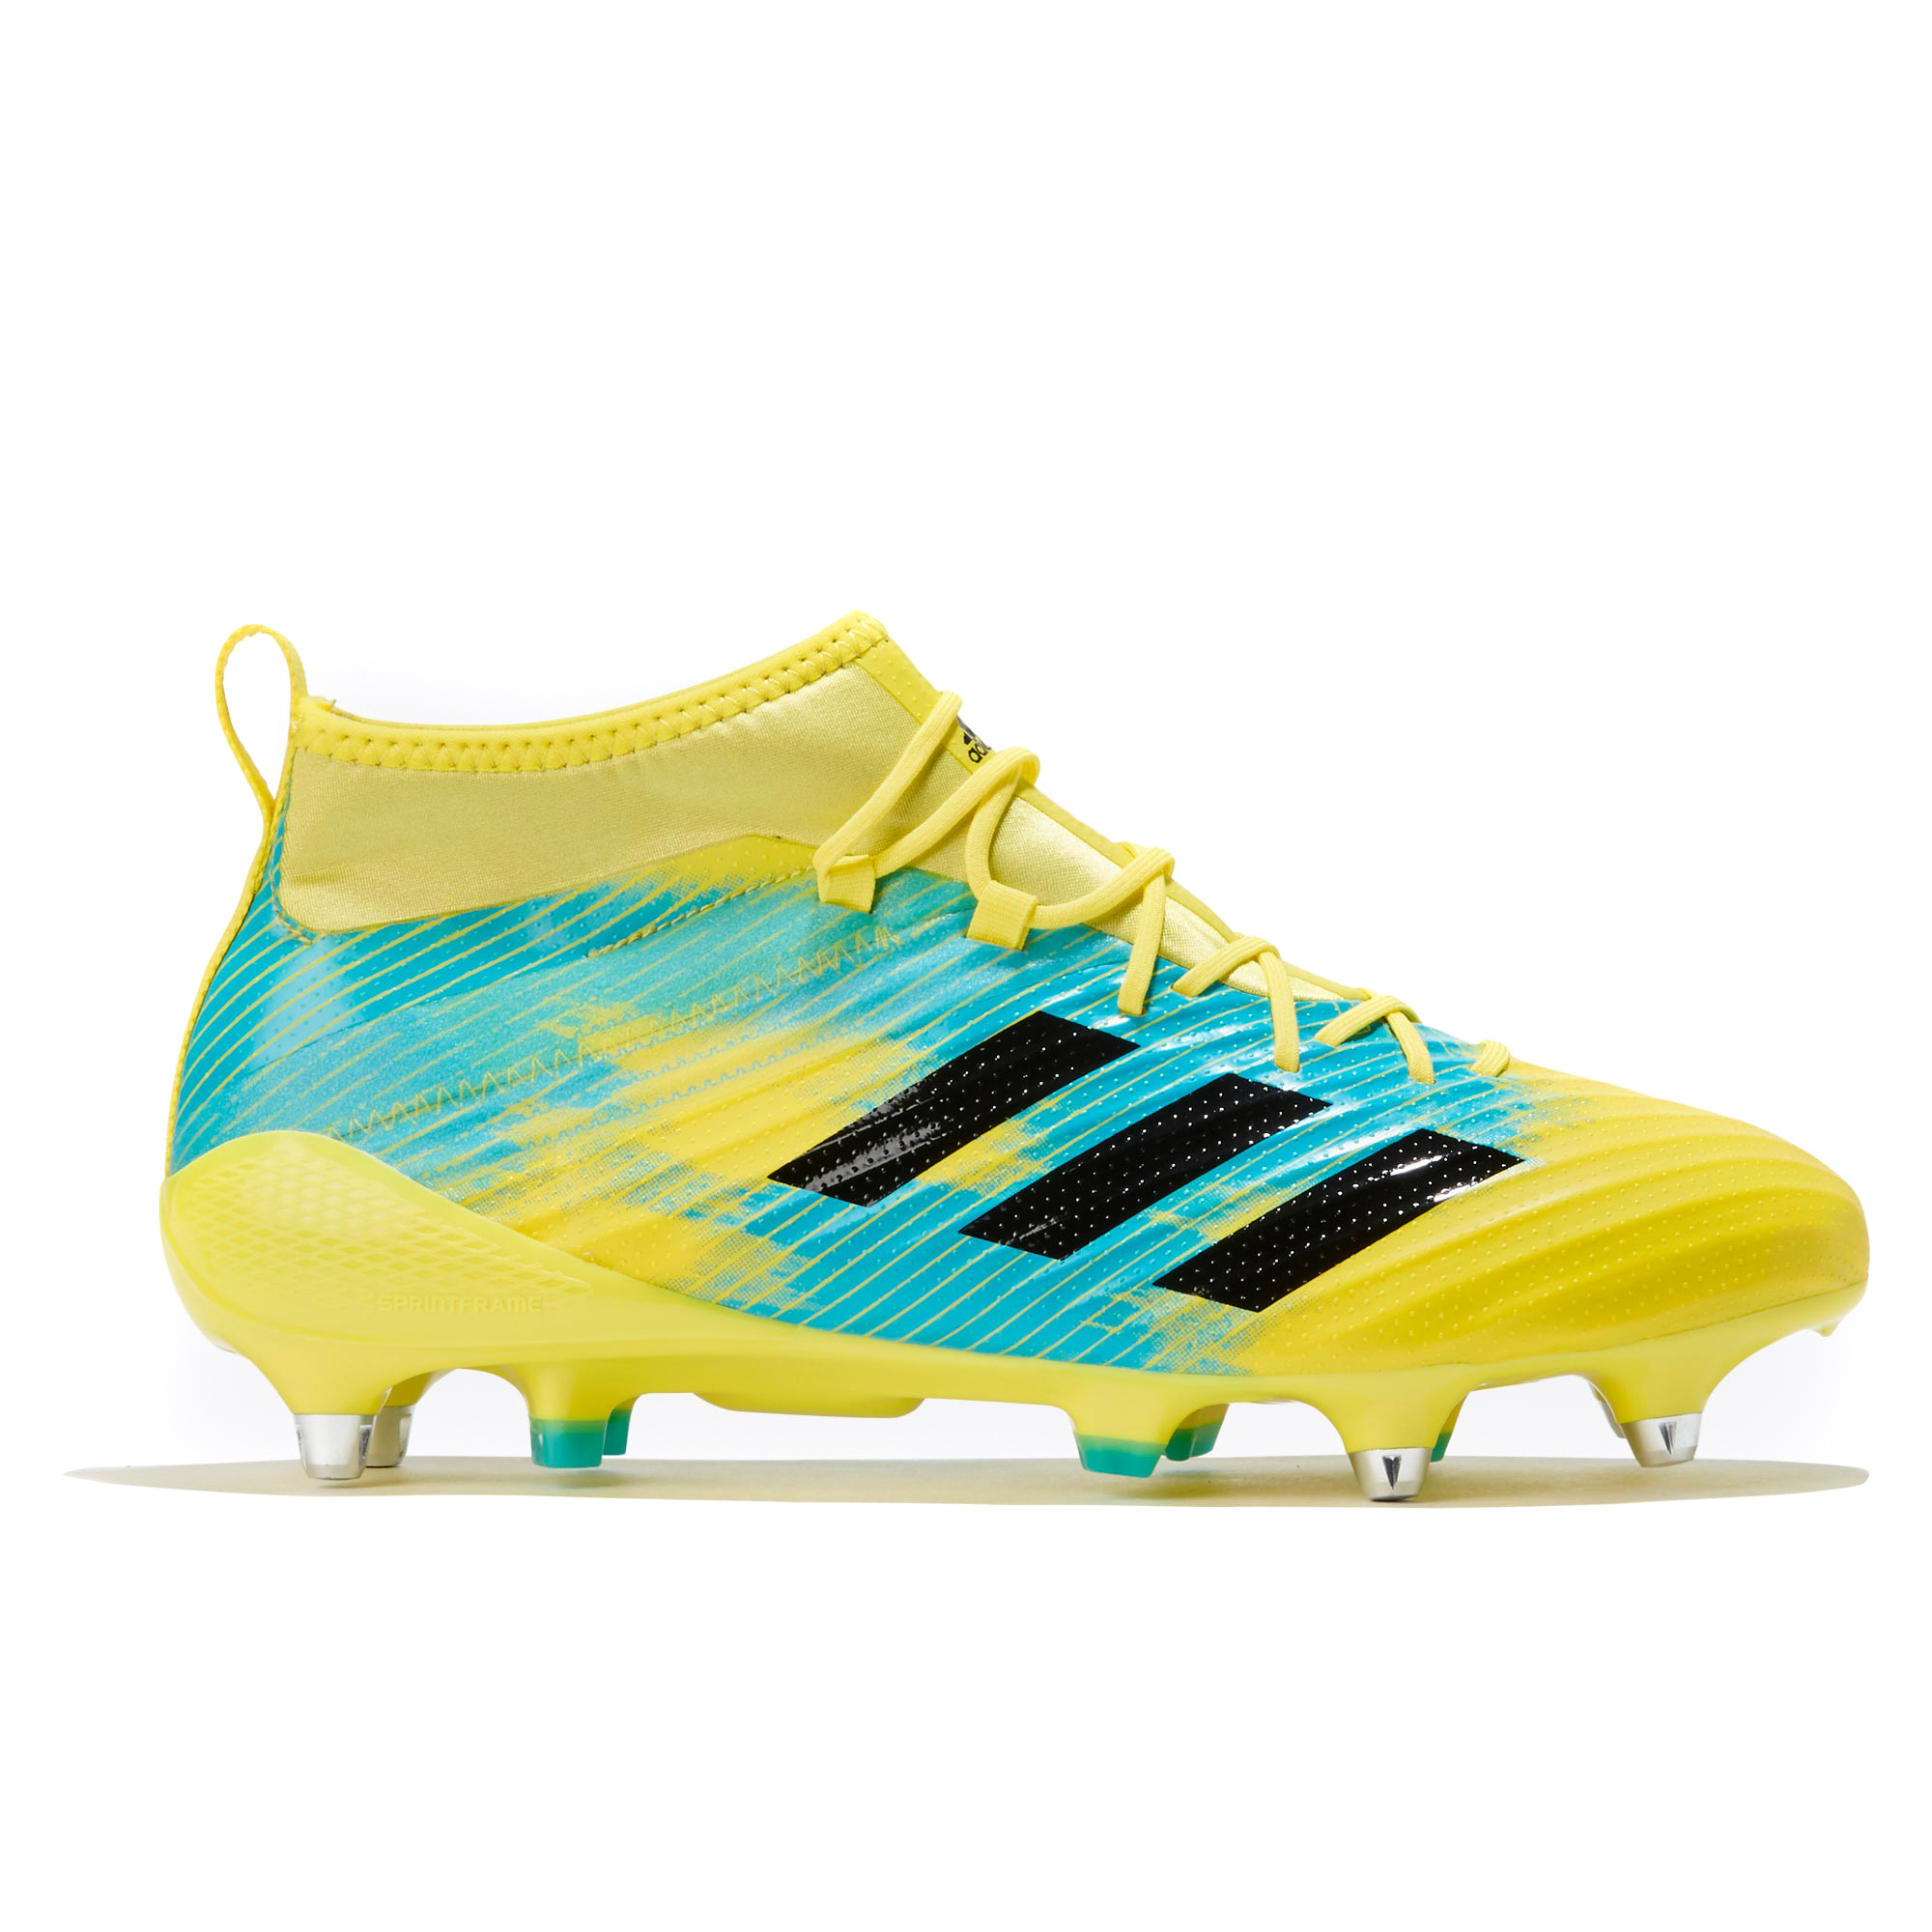 "Image of ""adidas Predator Flare - Soft Ground Rugby Boot - Yellow/Black/Aqua"""